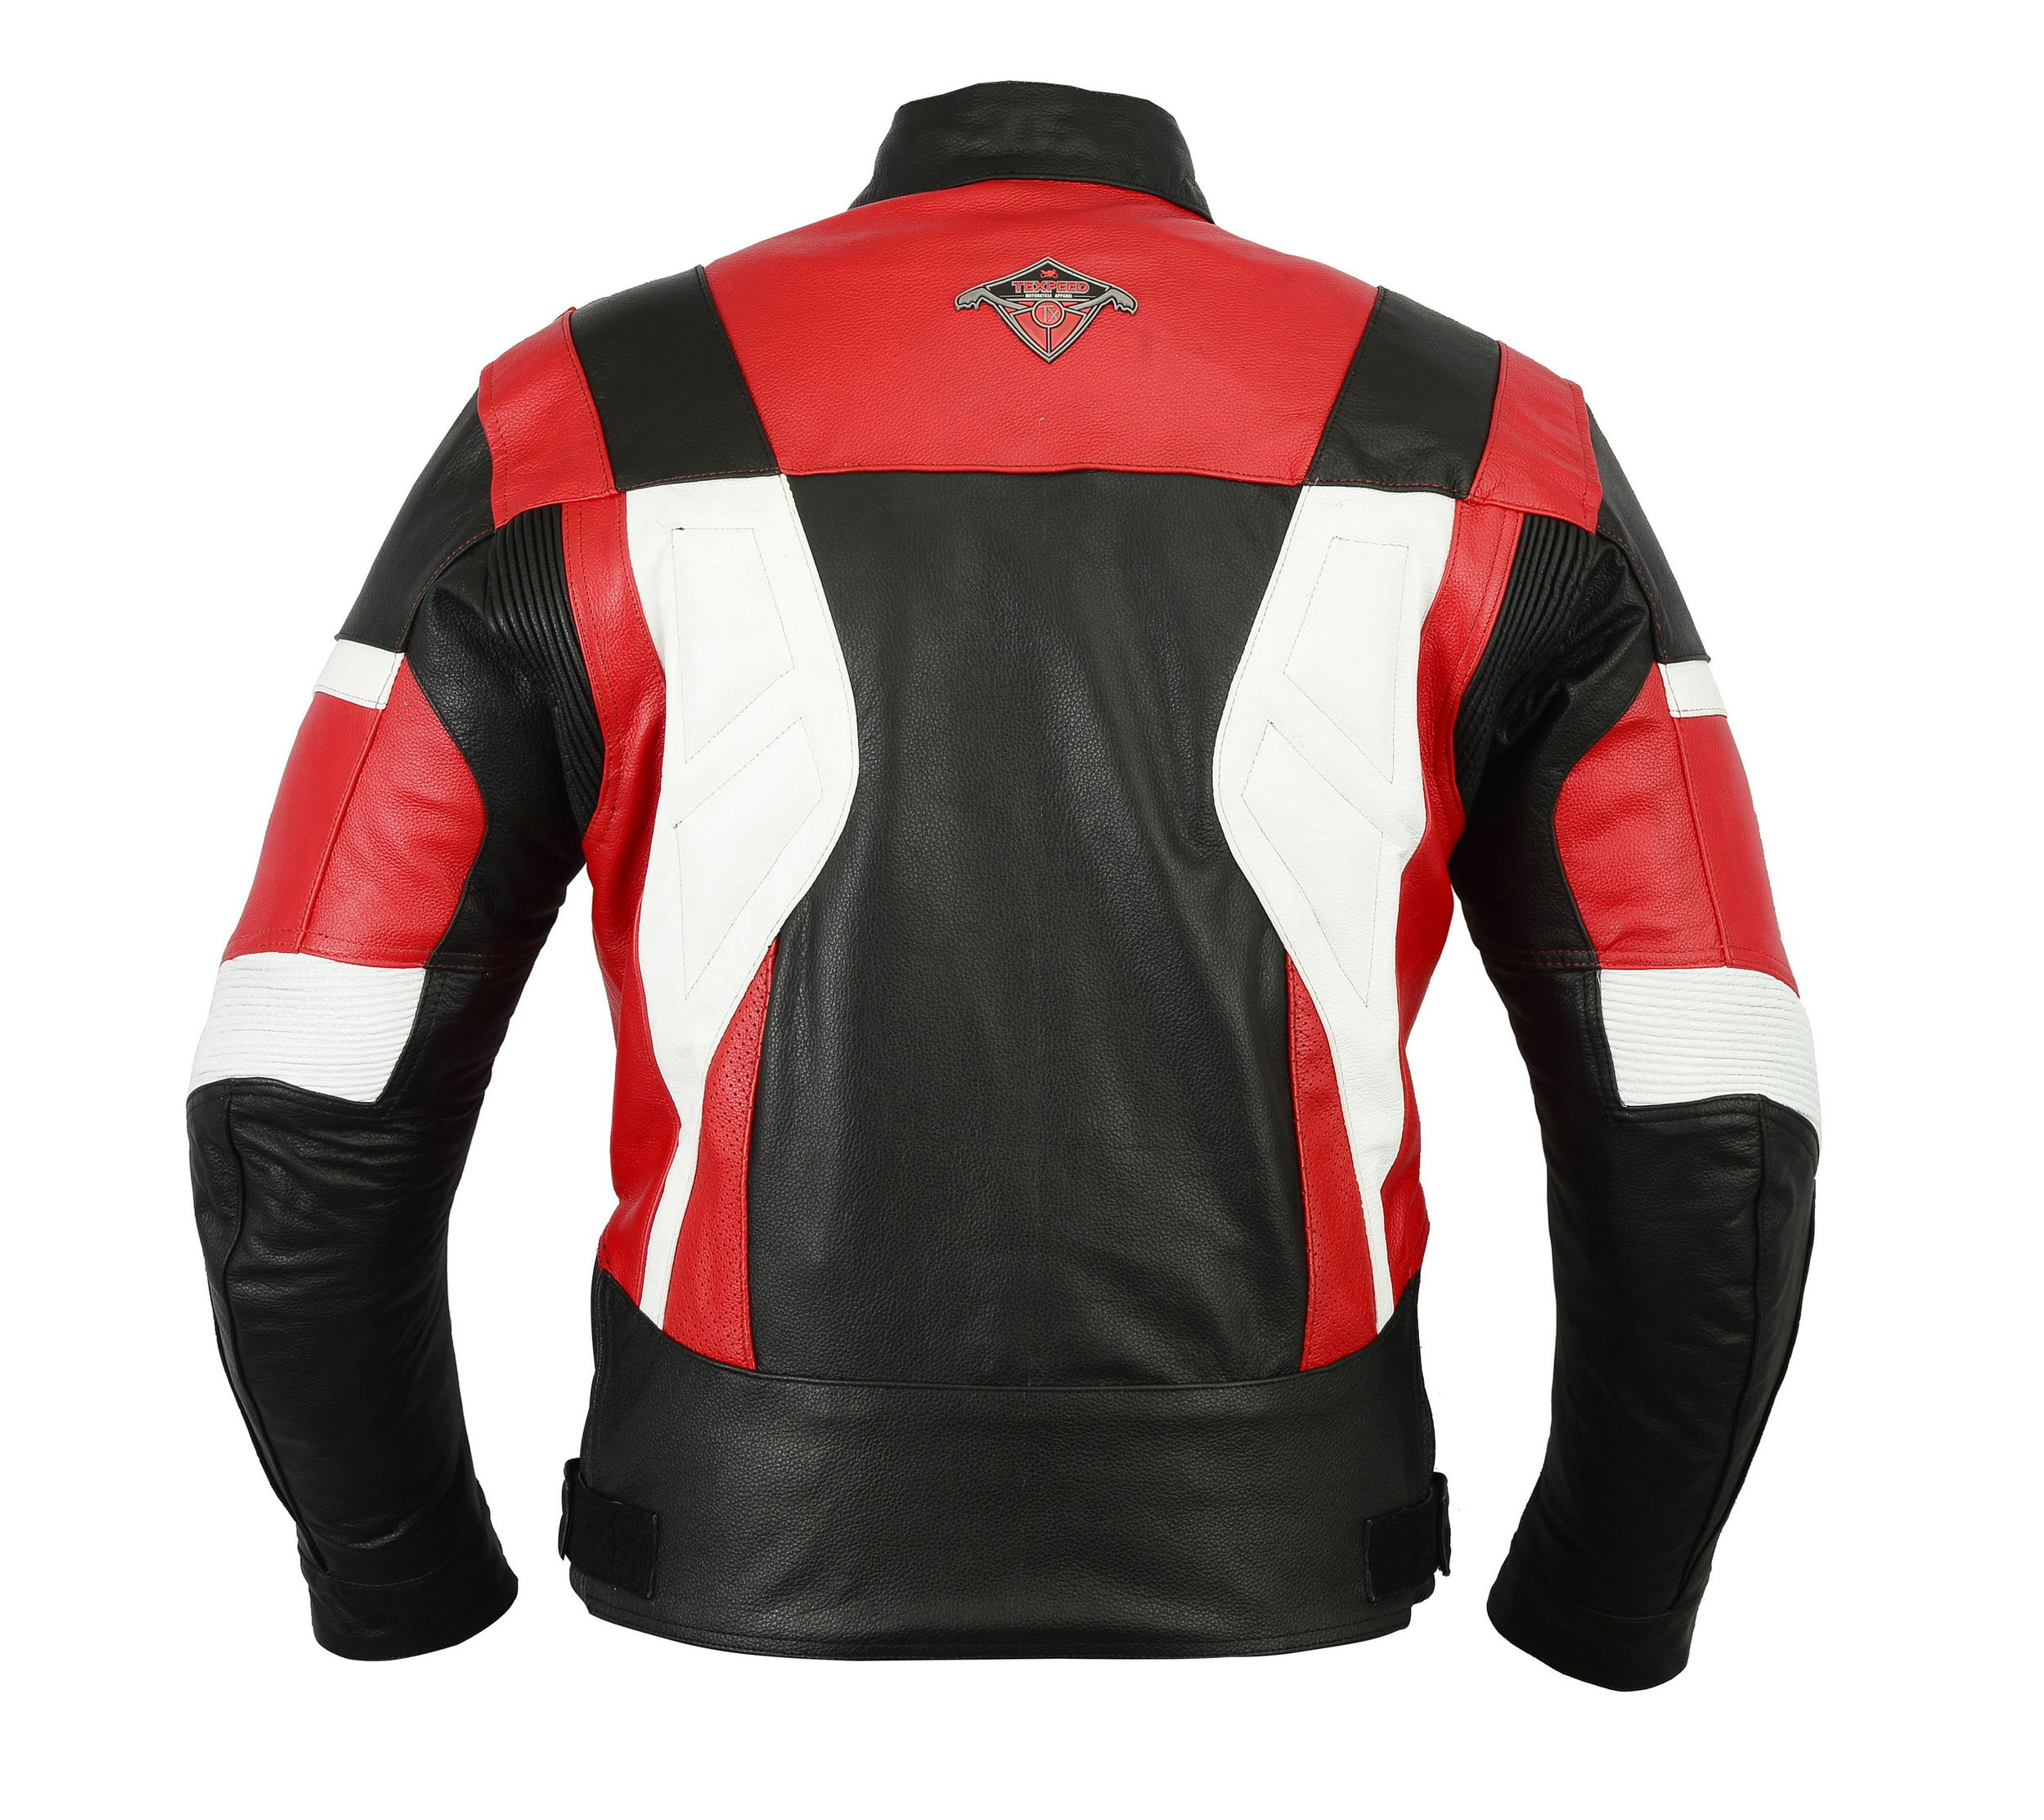 Franklin Leather Motorbike Jacket Vented Motorcycle Coat with Armours